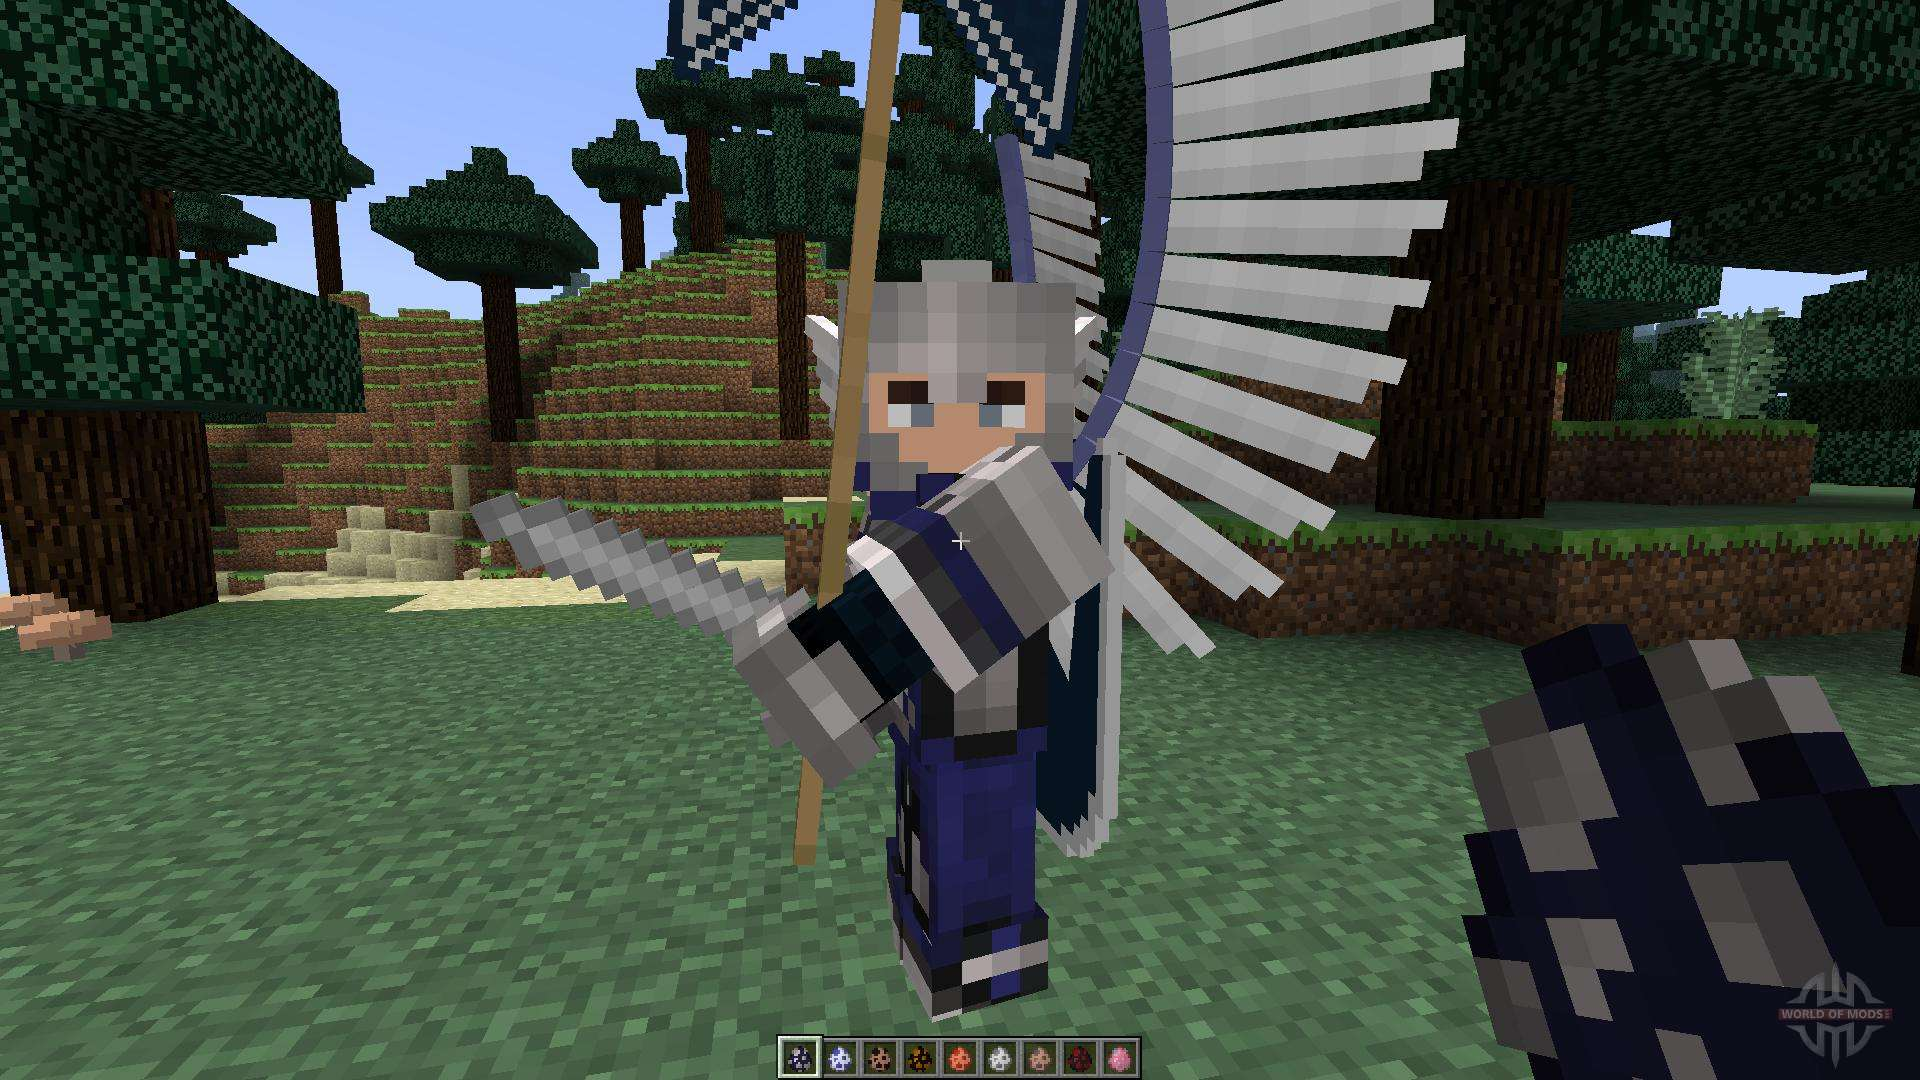 minecraft animation mod 1.7 10